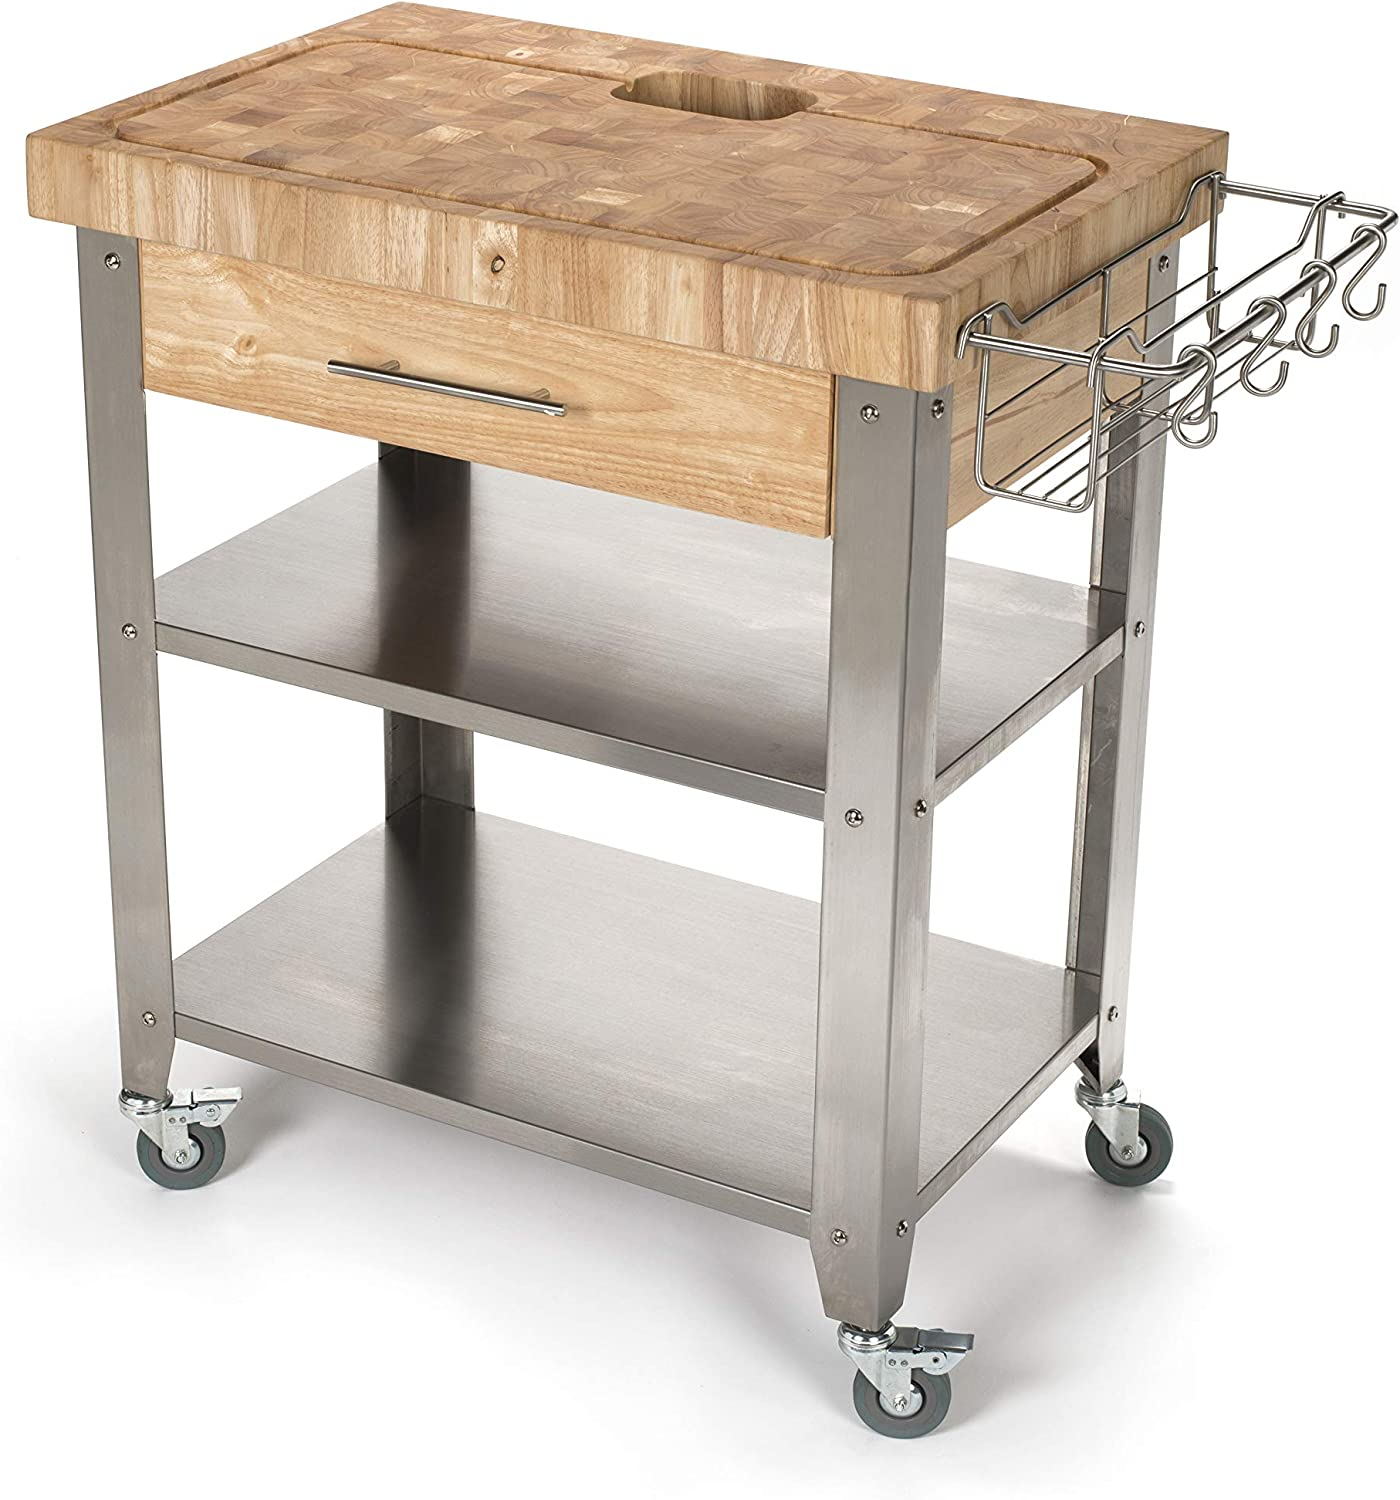 Chris & Chris JET8 Rolling Kitchen Island - Portable Food Prep Table with  Durable Cutting Surface, Juice Groove & Collection Pan